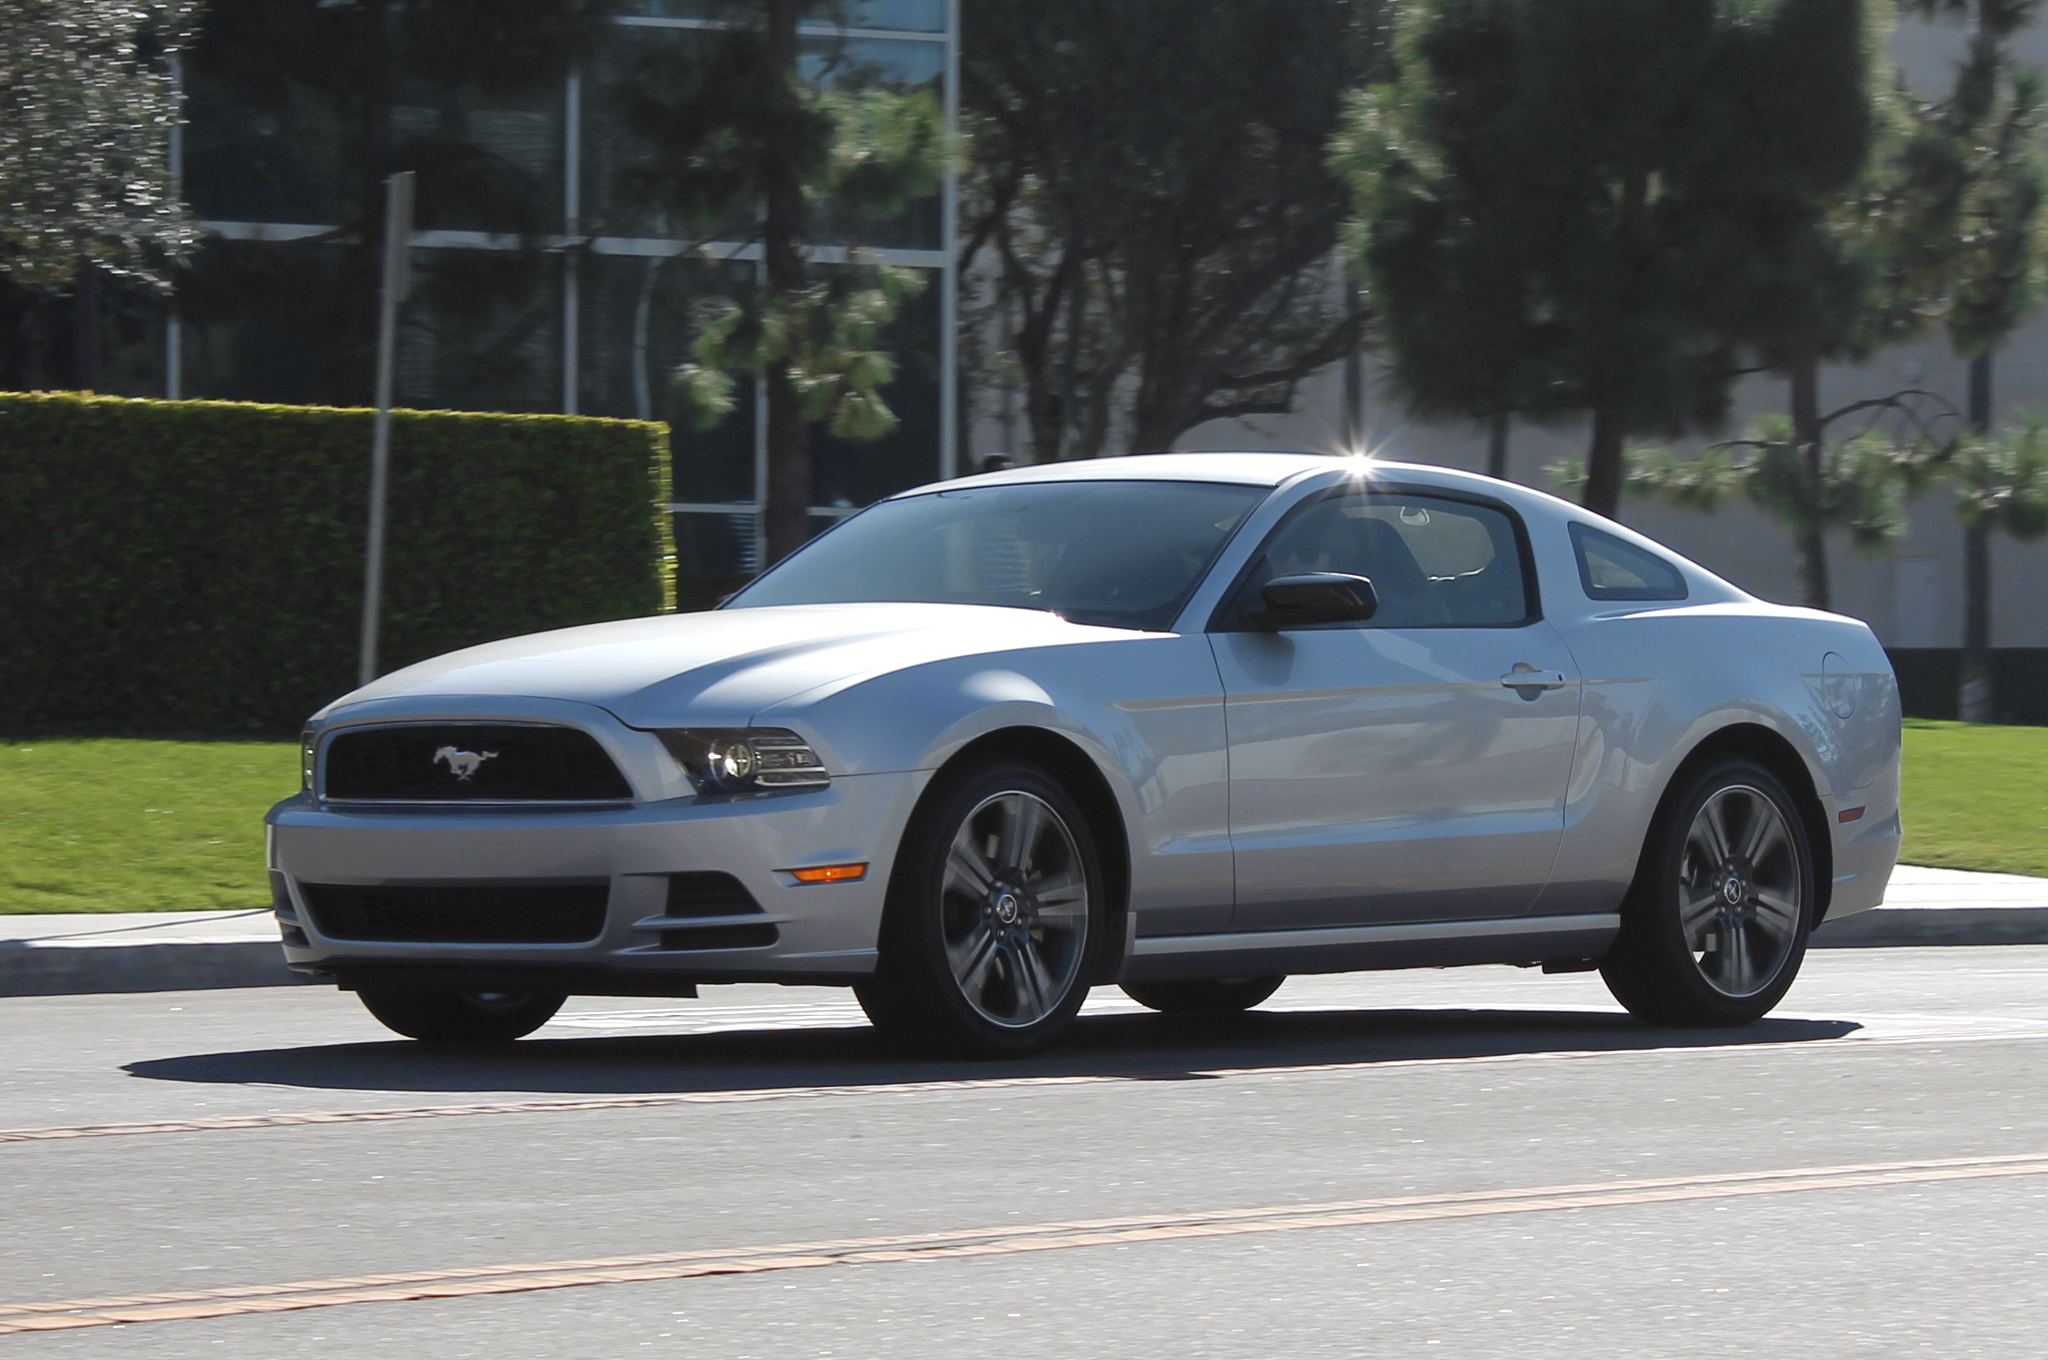 2014 ford mustang premium v6 performance package first test motortrend go back gt gallery for gt 2000 mustang v6 engine diagram [ 2048 x 1360 Pixel ]